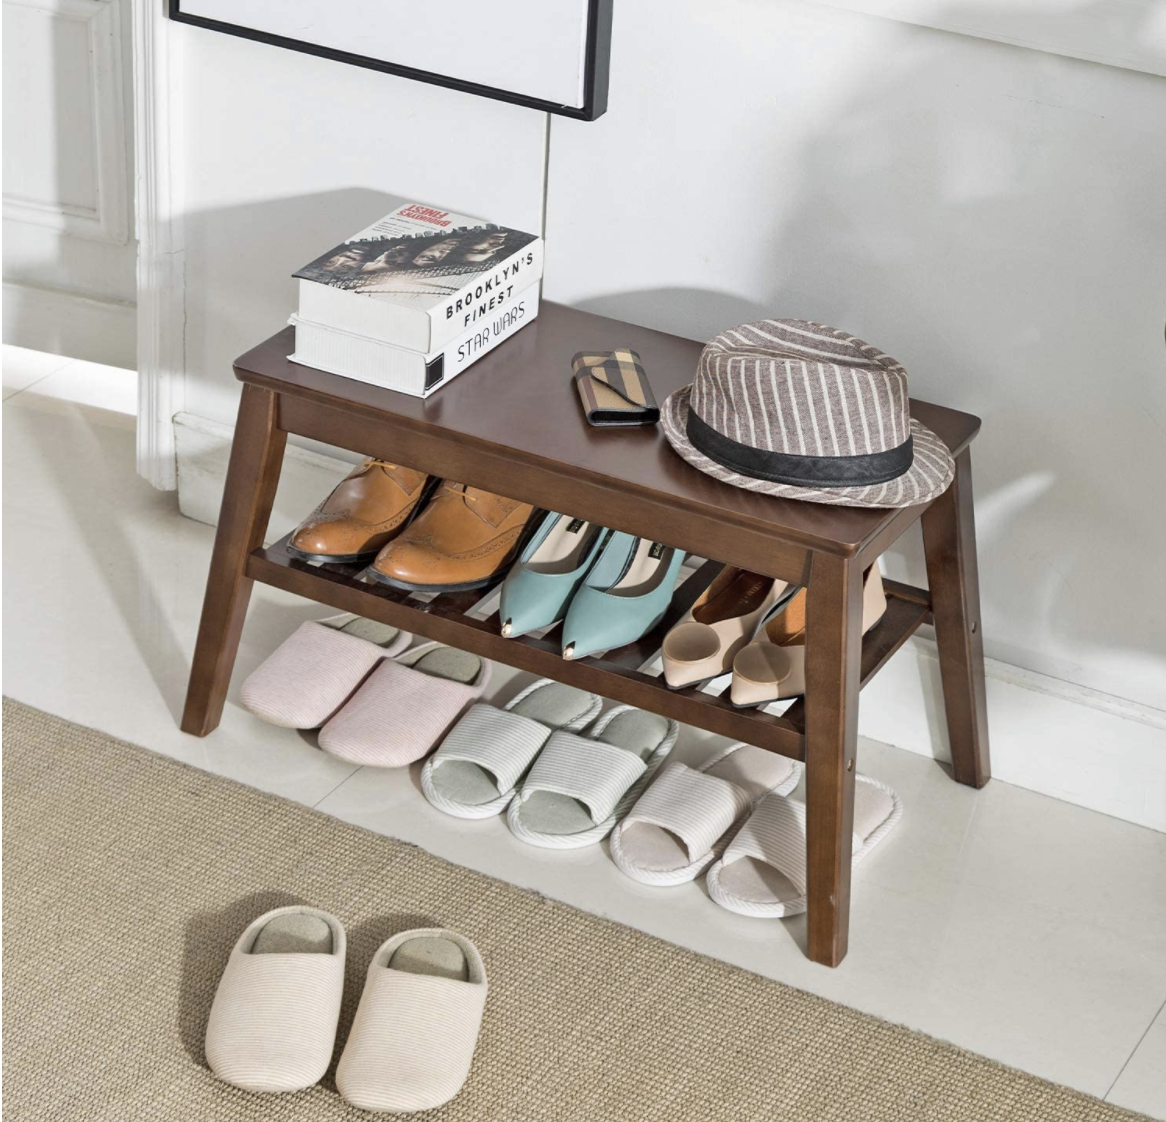 A shoe rack bench storing shoes in a hallway